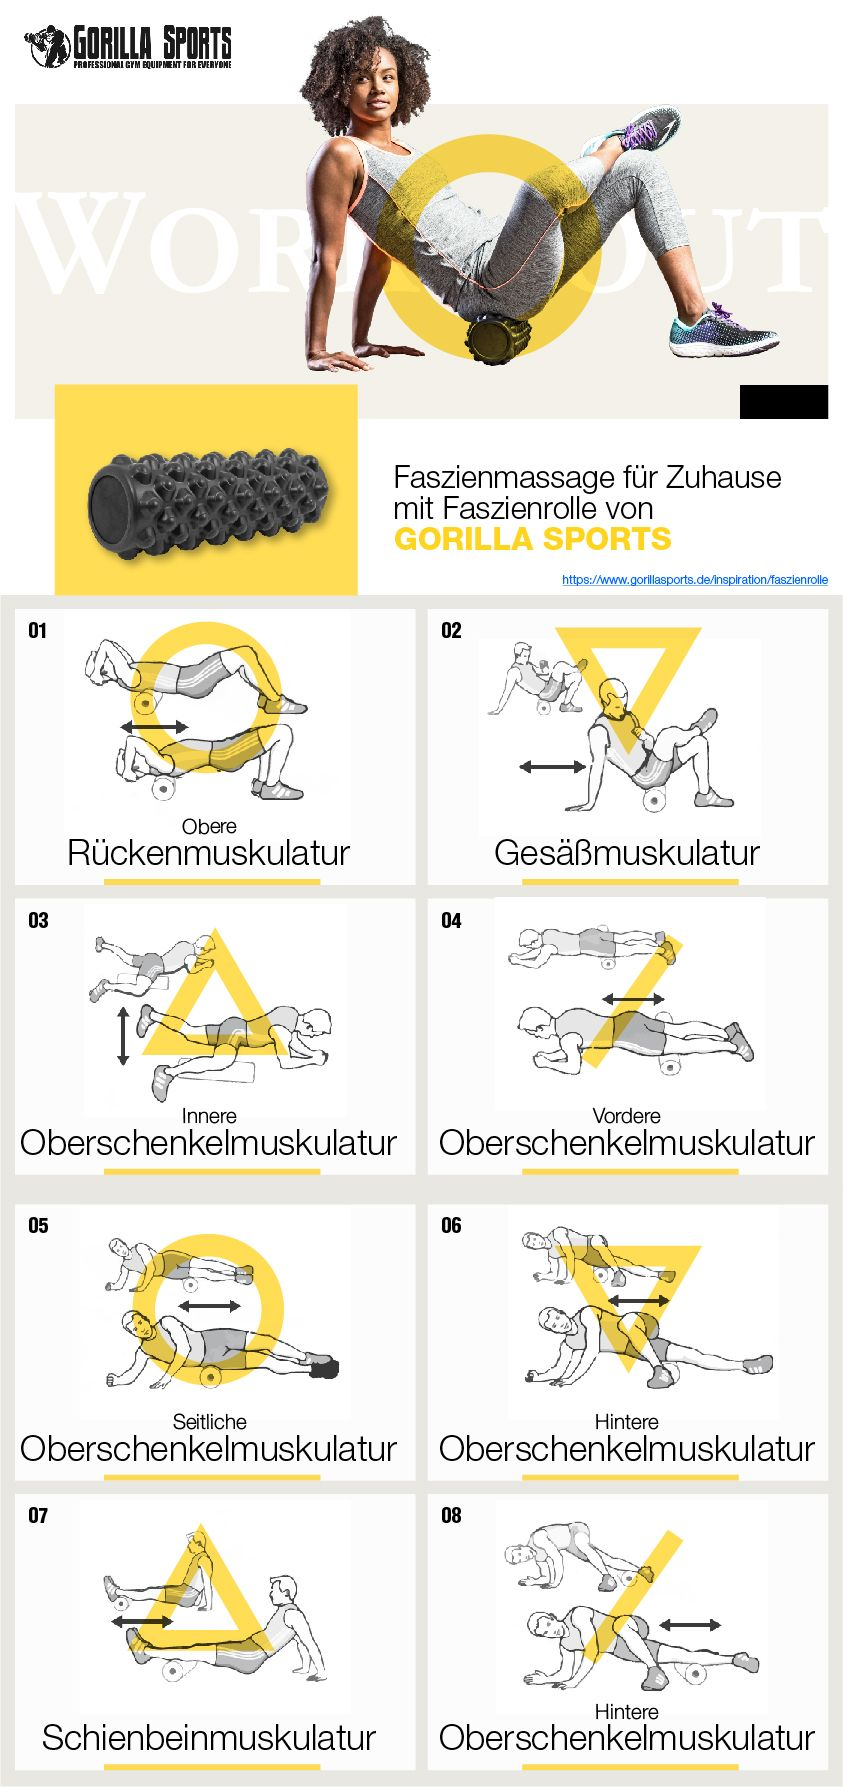 HOME GYM - WORKOUT FASZIENROLLE von GORILLA SPORTS® #pilatesworkoutroutine